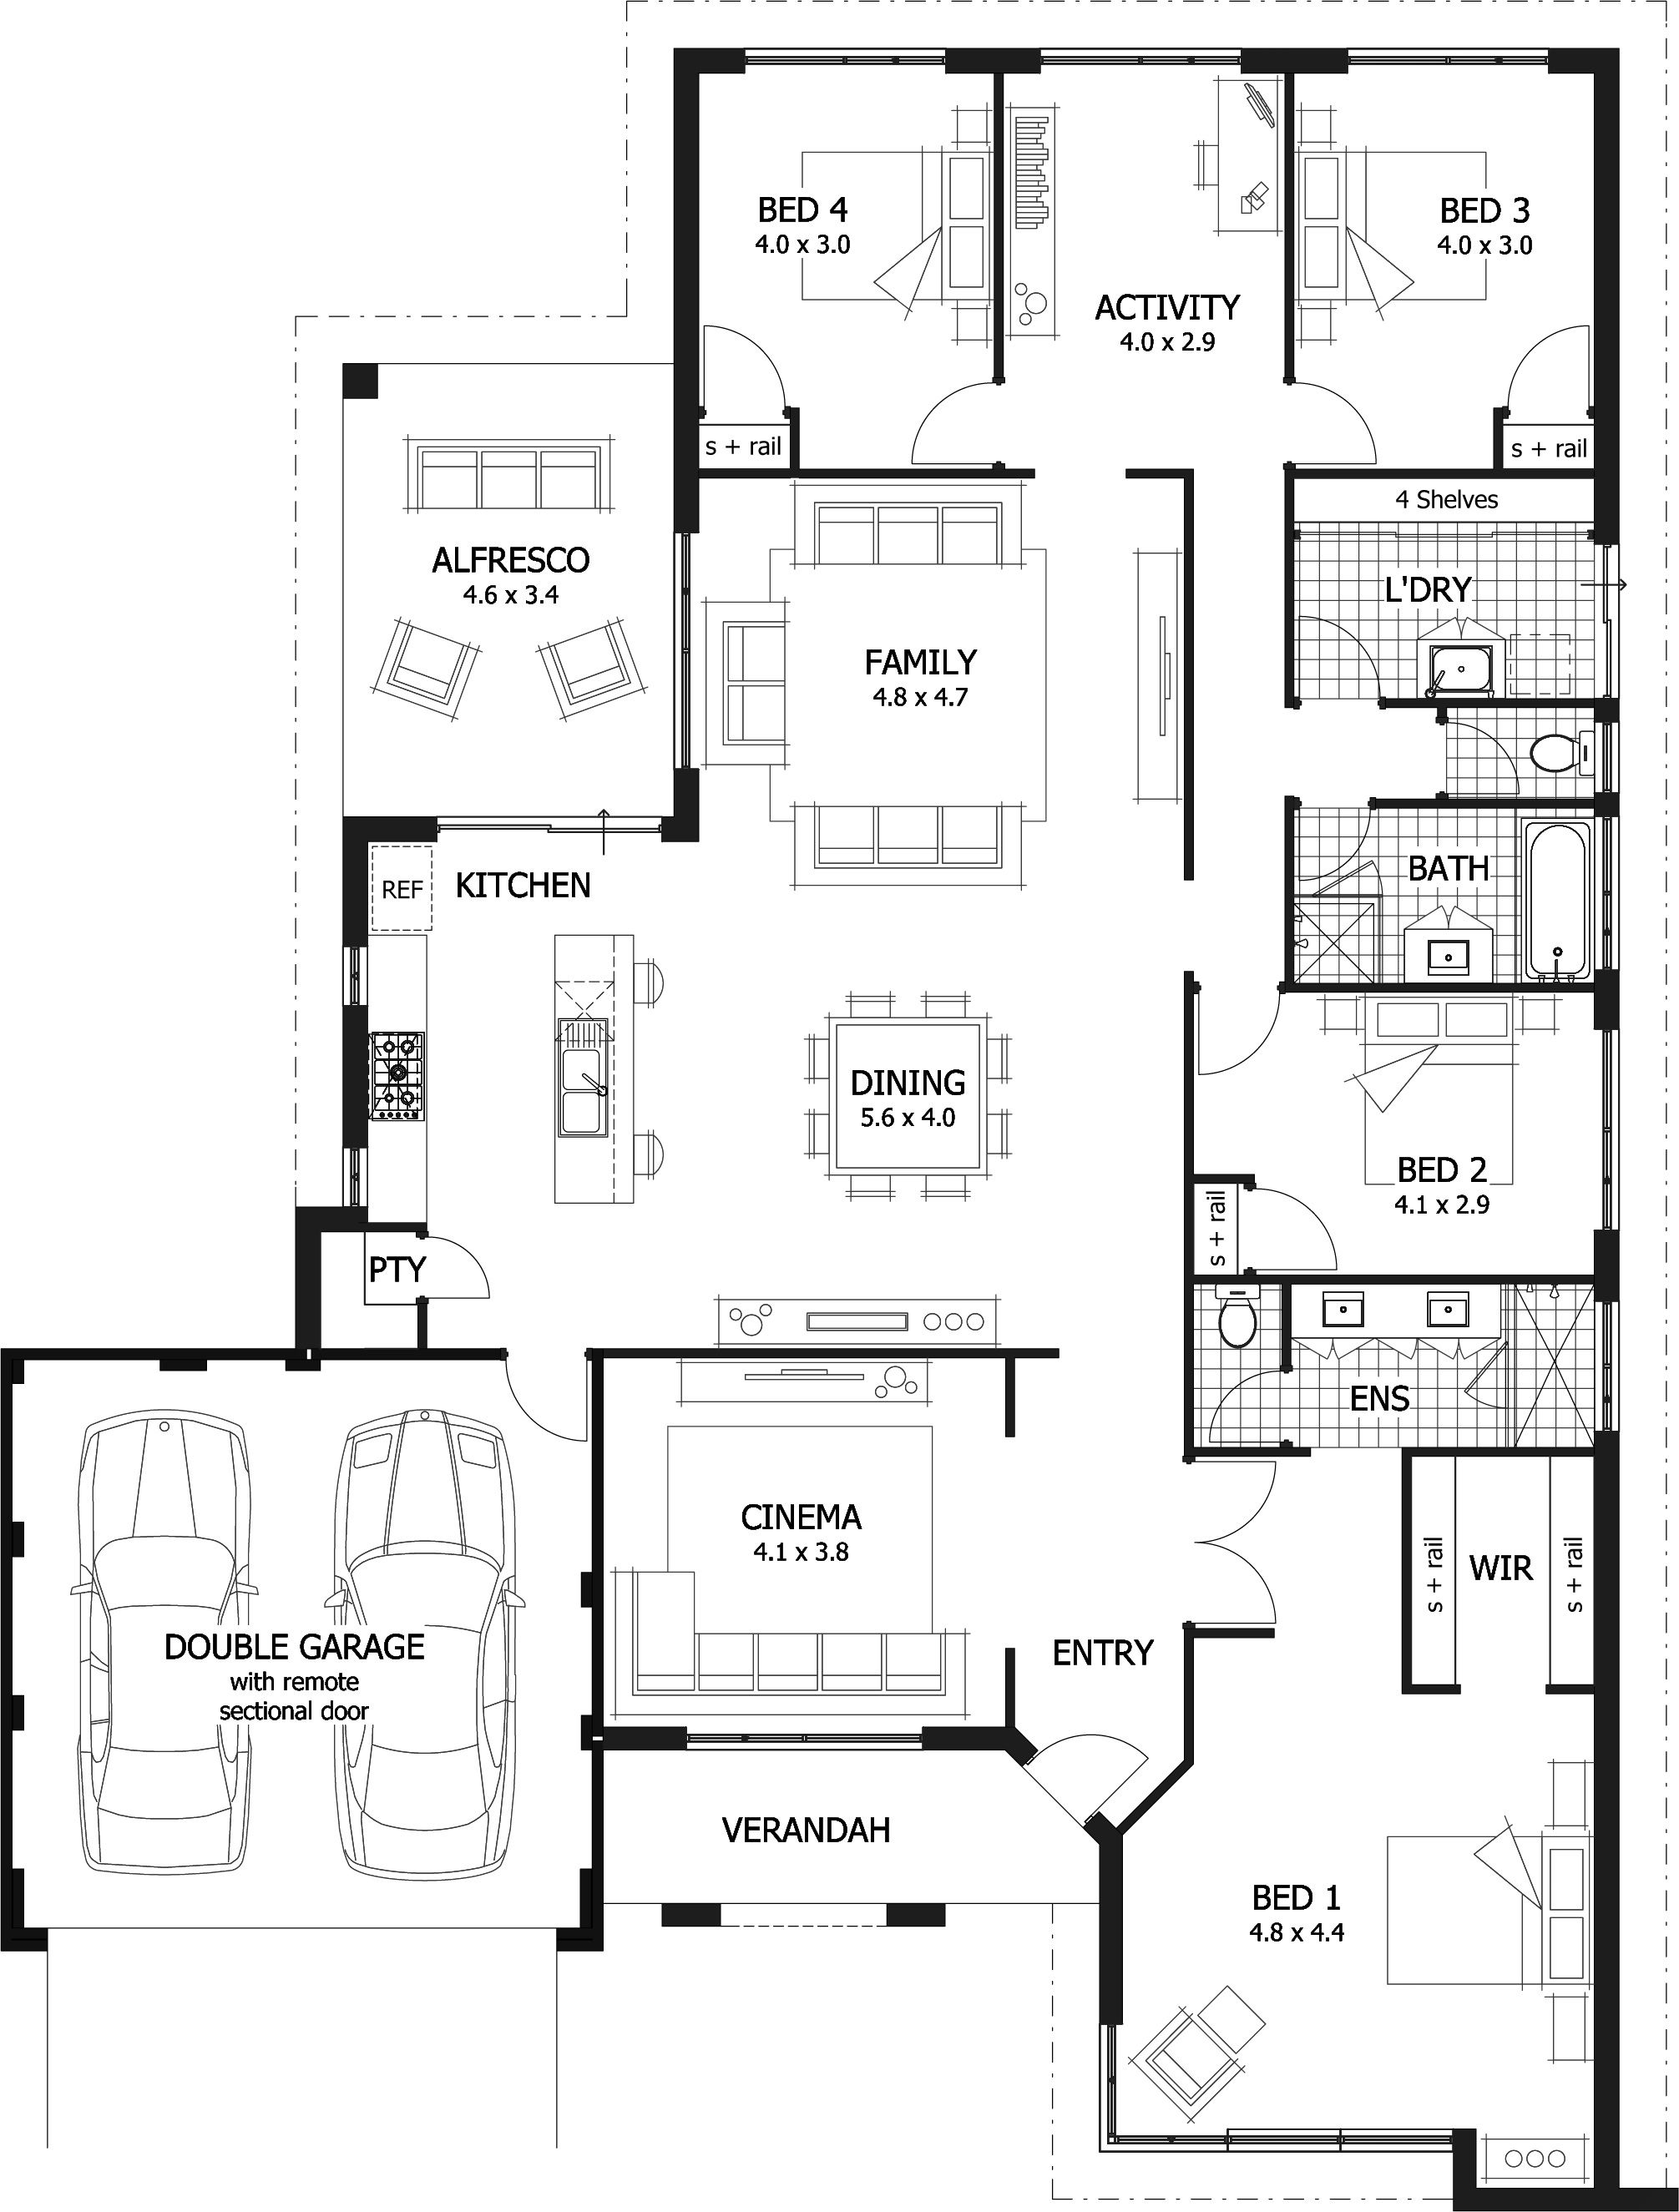 Find A 4 Bedroom Home That S Right For You From Our